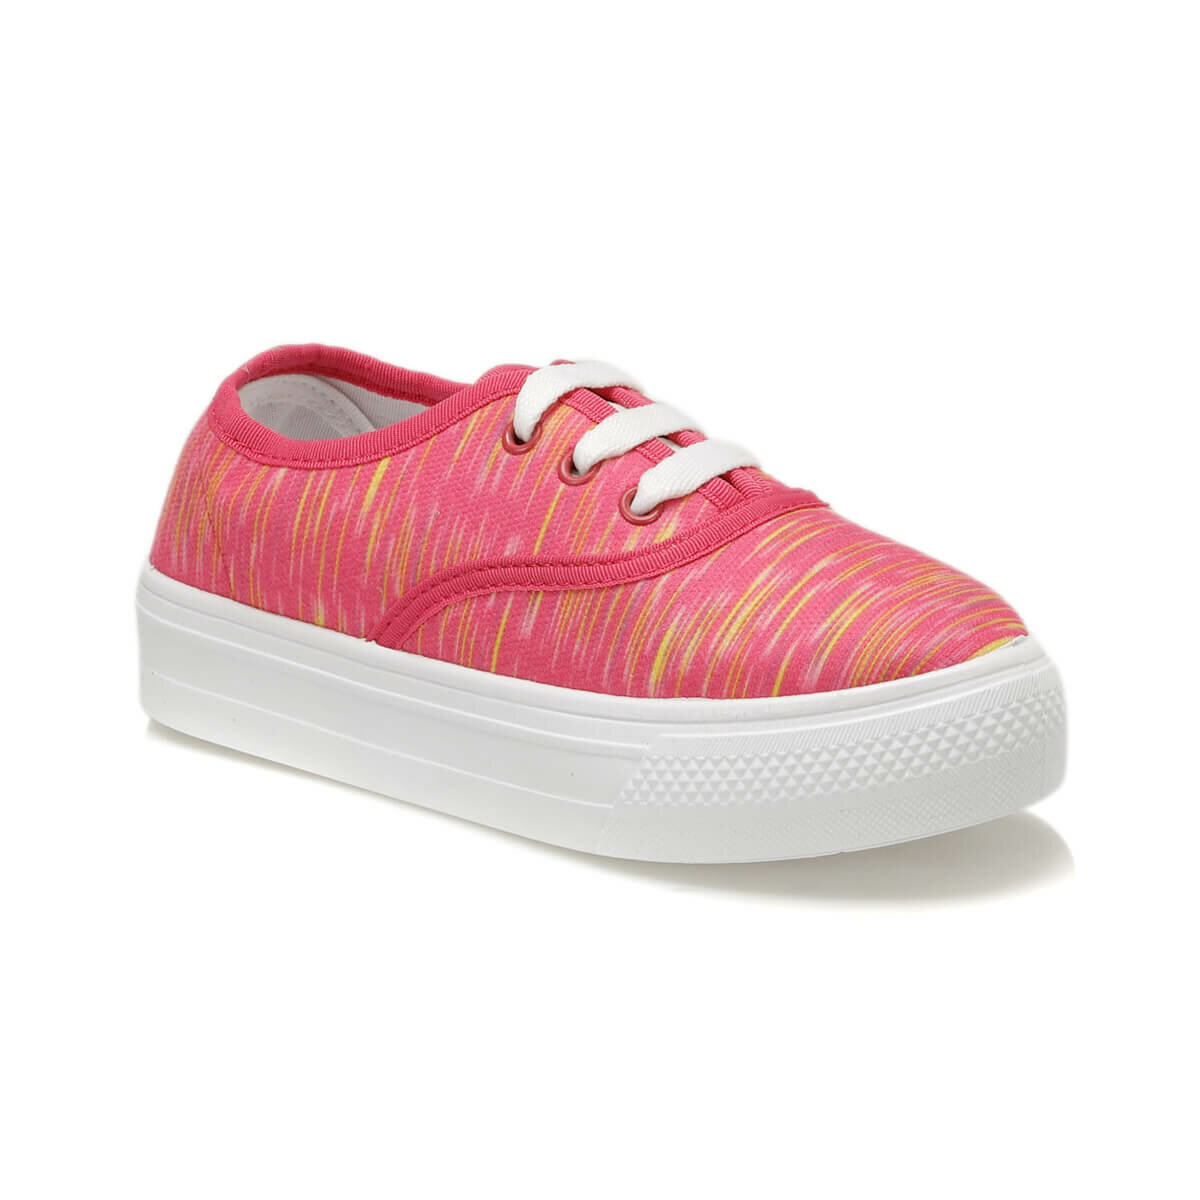 FLO RAPHAL Fuchsia Female Child Sneaker Shoes KINETIX